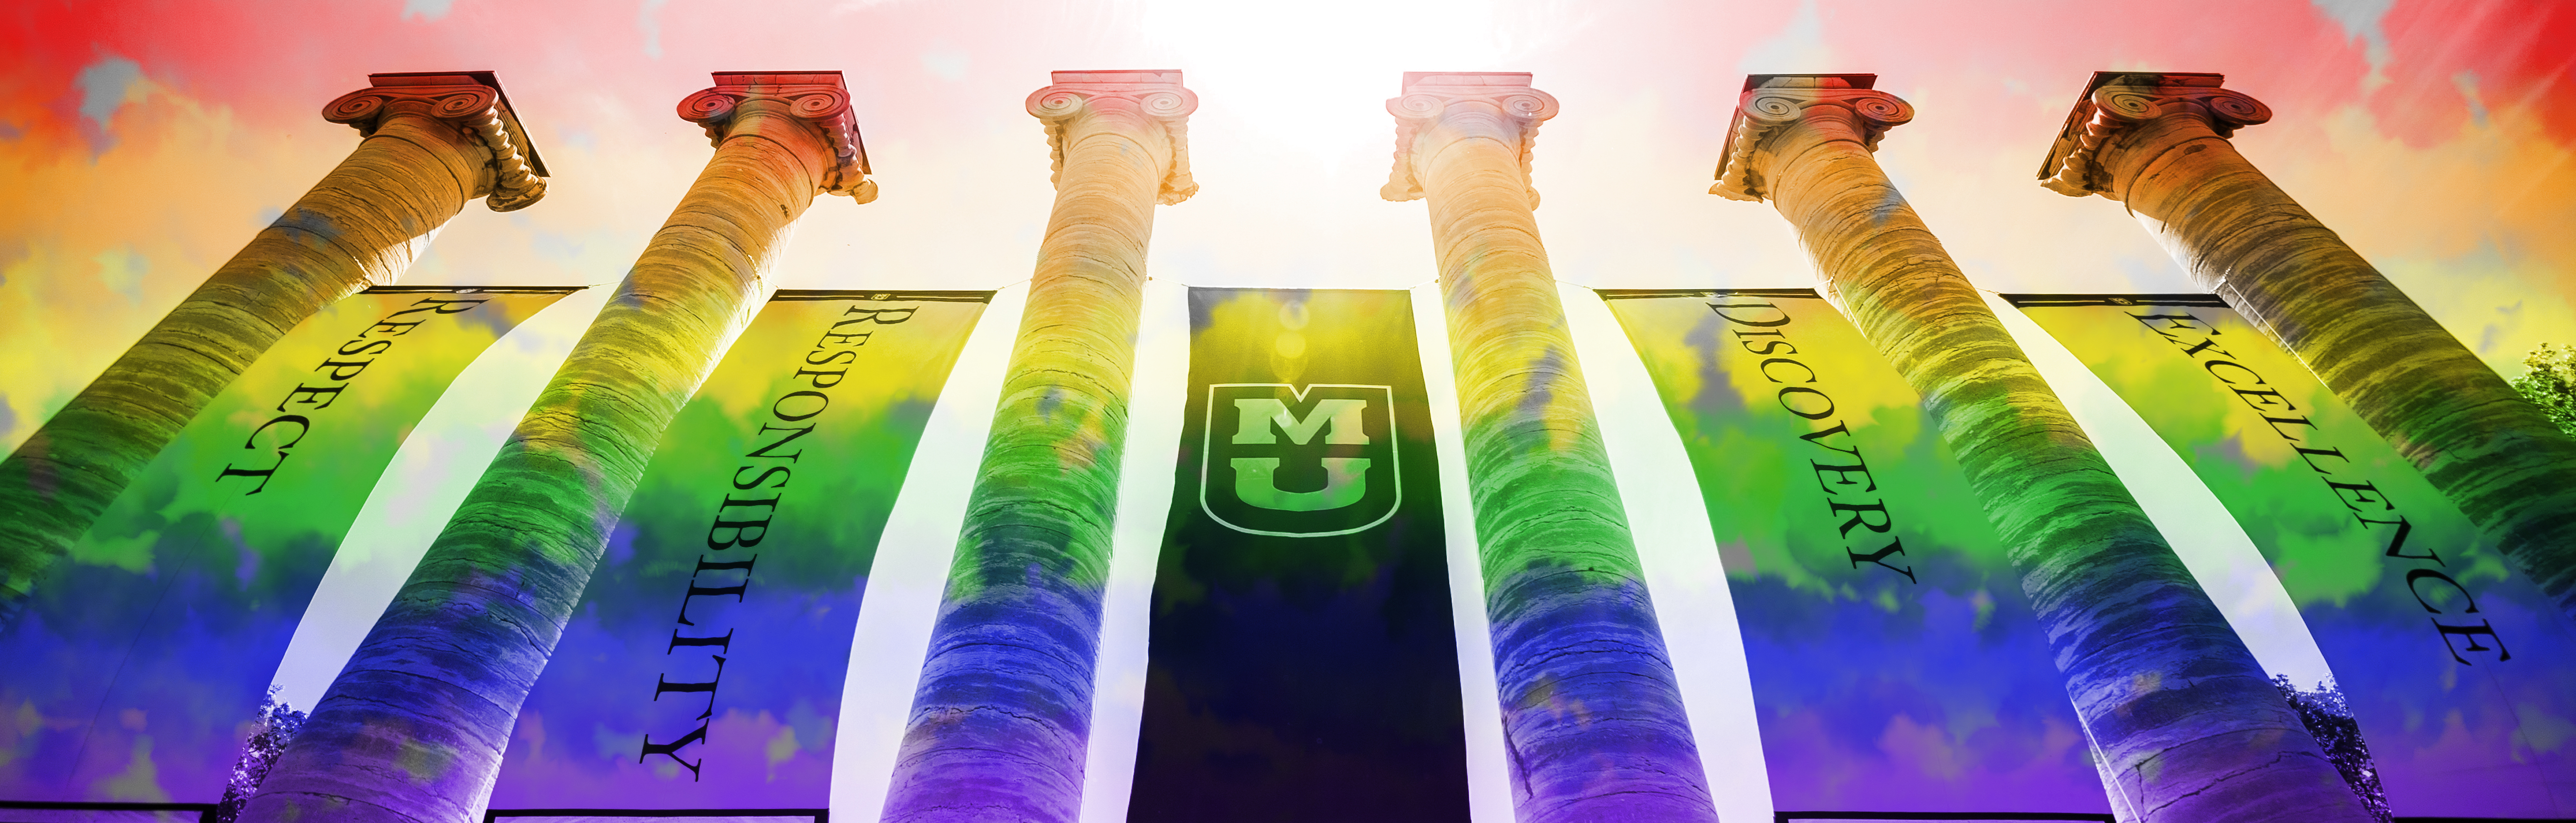 Photo of Columns overlayed by rainbow gradient color.